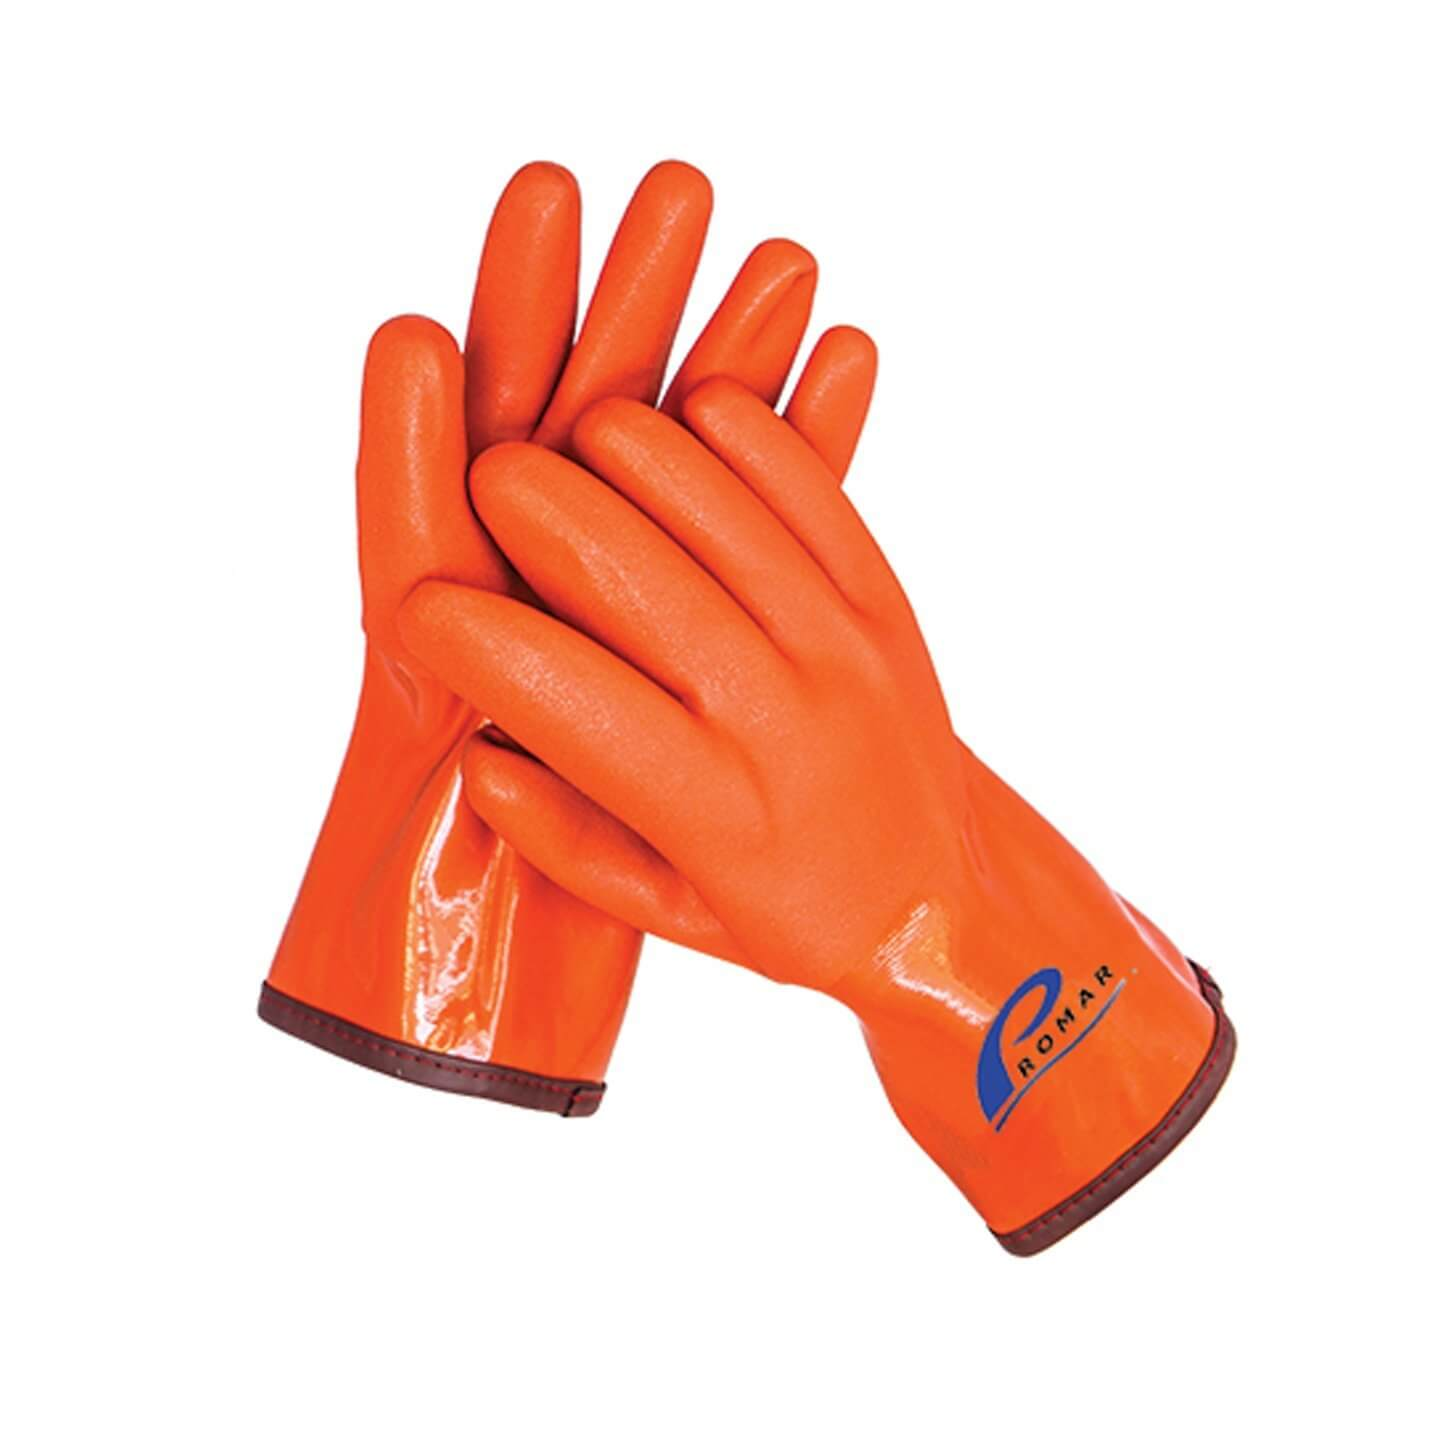 the best pair of crab gloves you will find don t get pinched